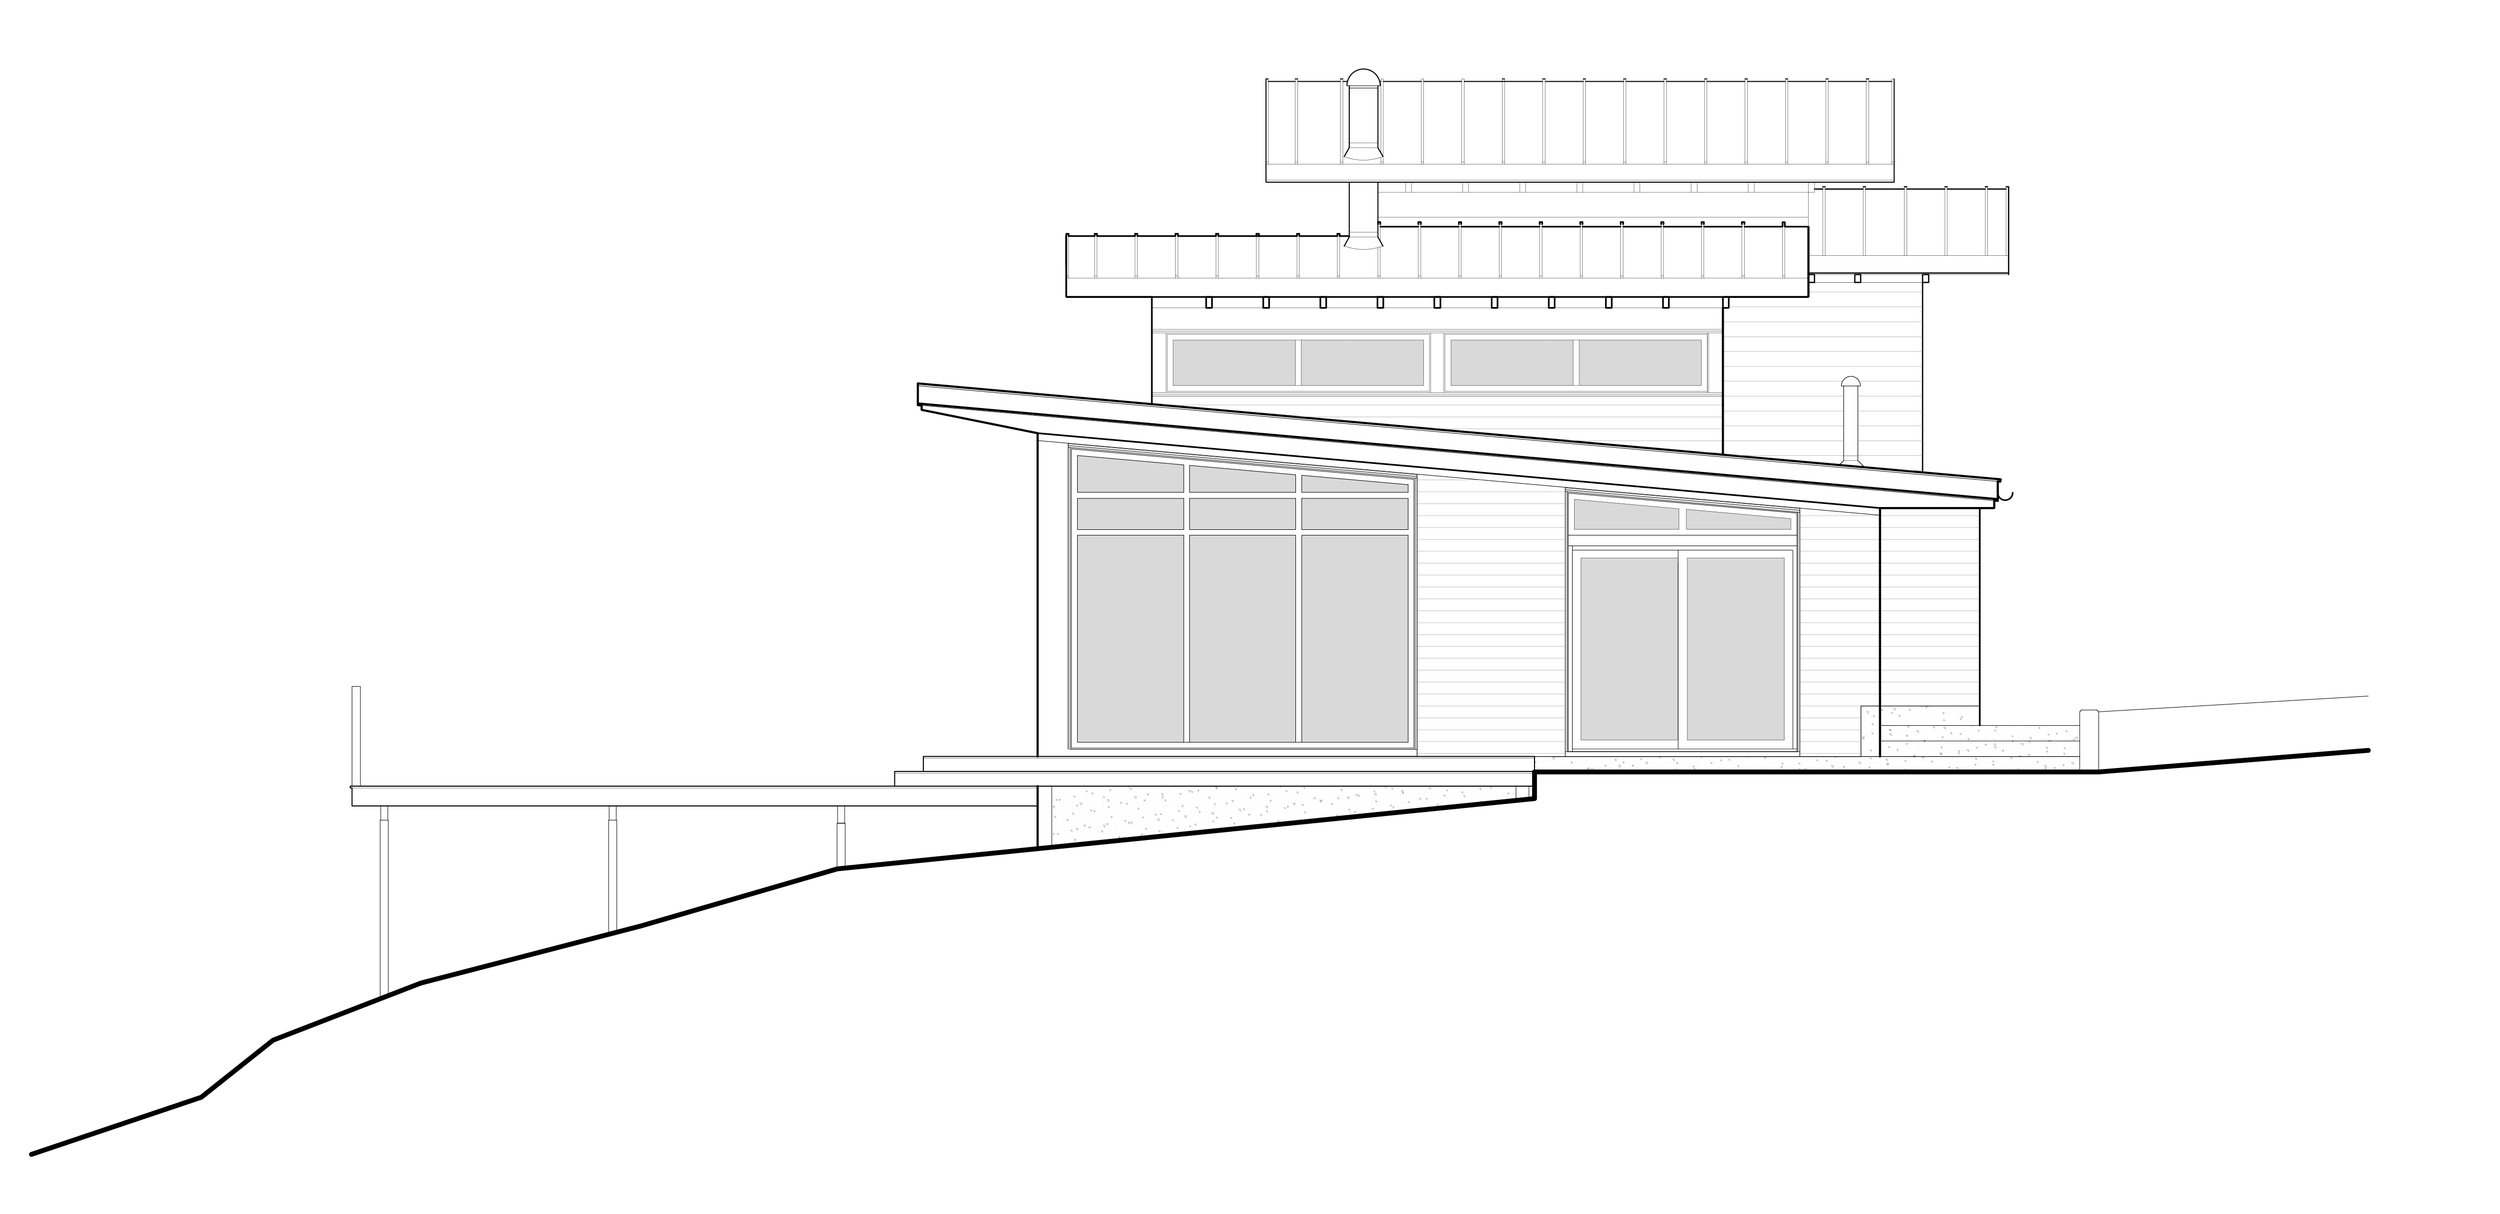 POZER_20181011_Presentation West Elevation.jpg